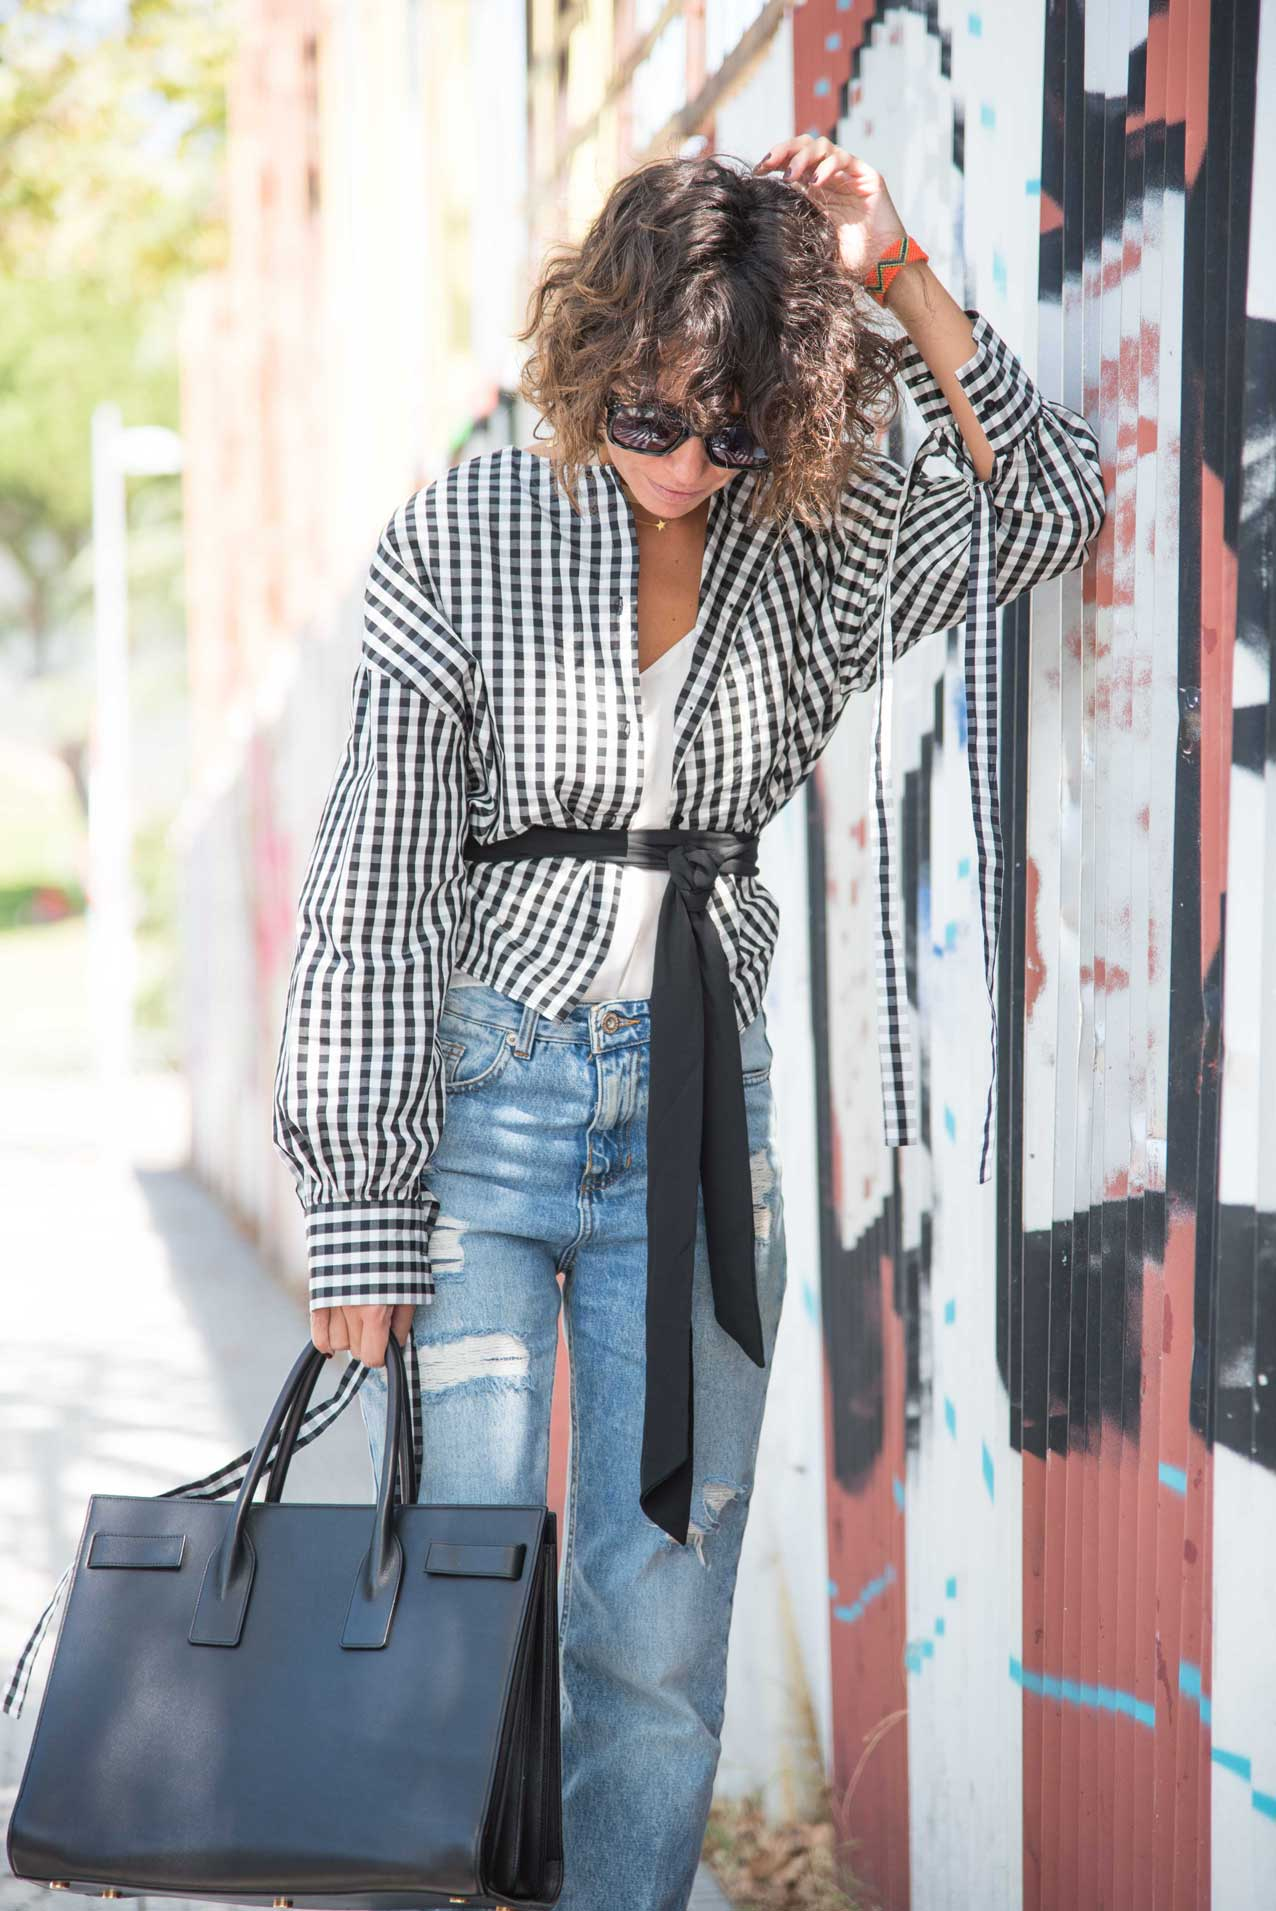 vichy_damero-shirt-look-mom_jeans-cool-lemonade-streetstyle5